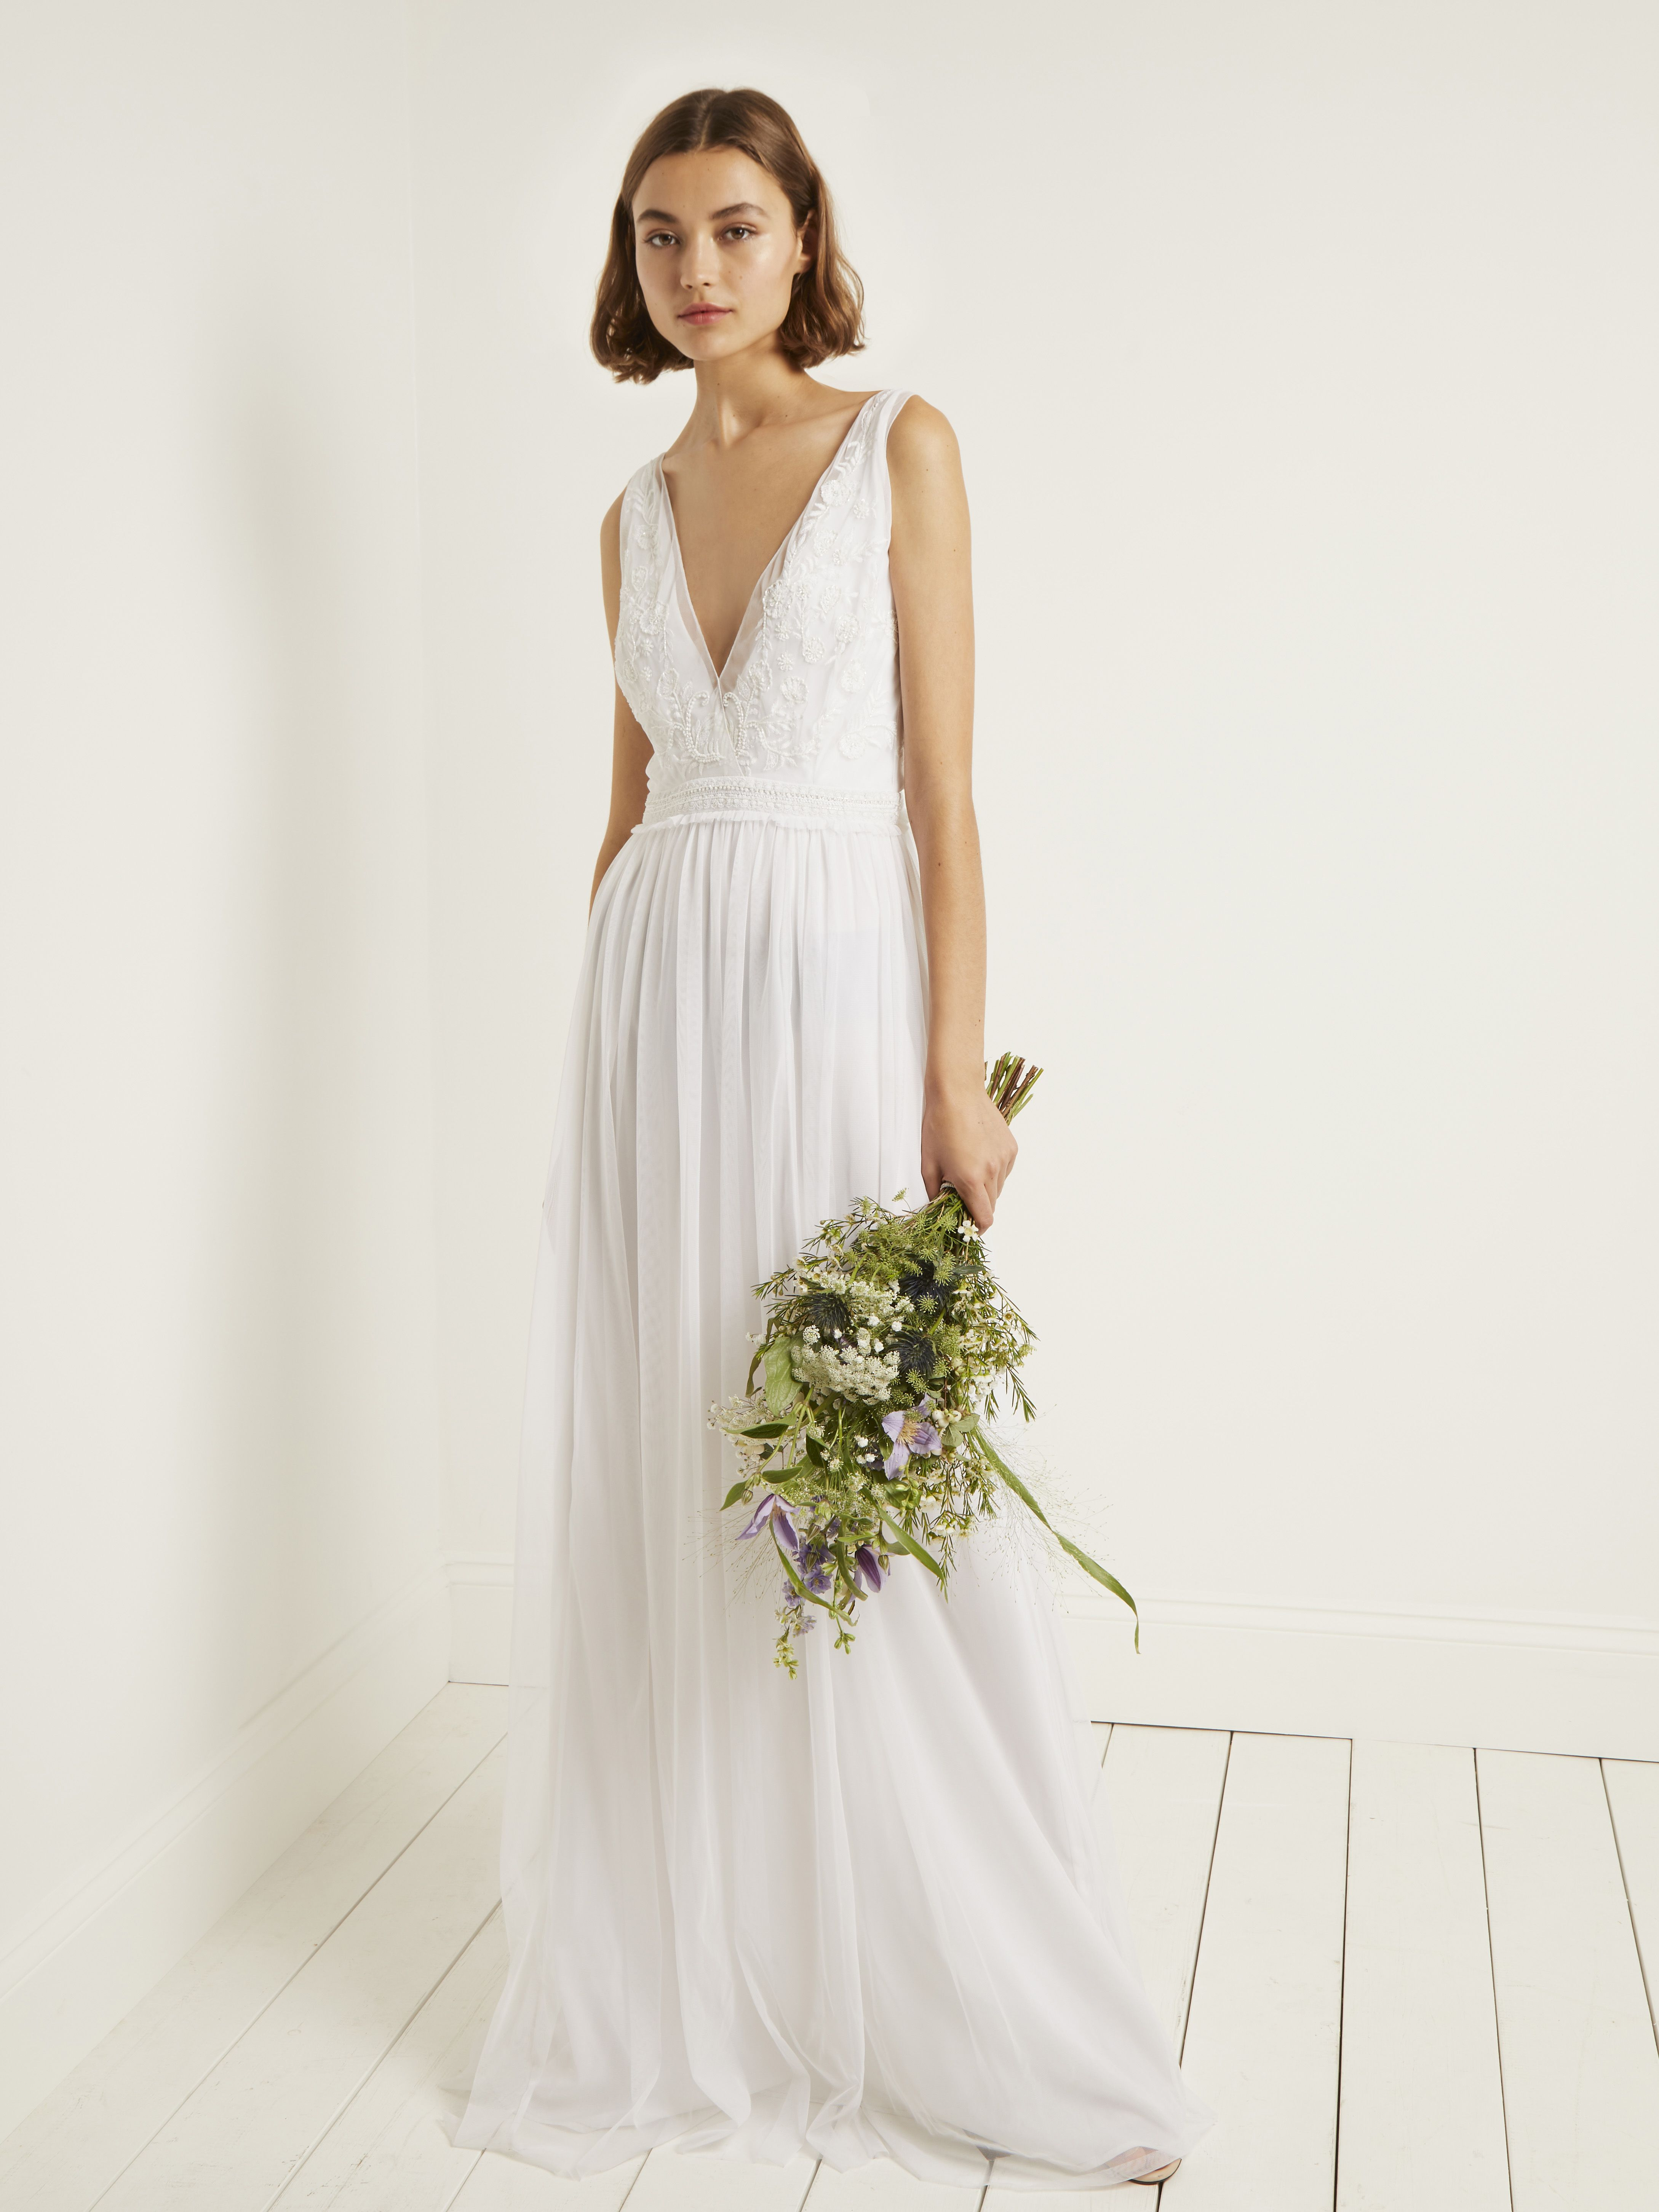 6fd57e03985 French Connection wedding dresses - French Connection launches bridal  collection